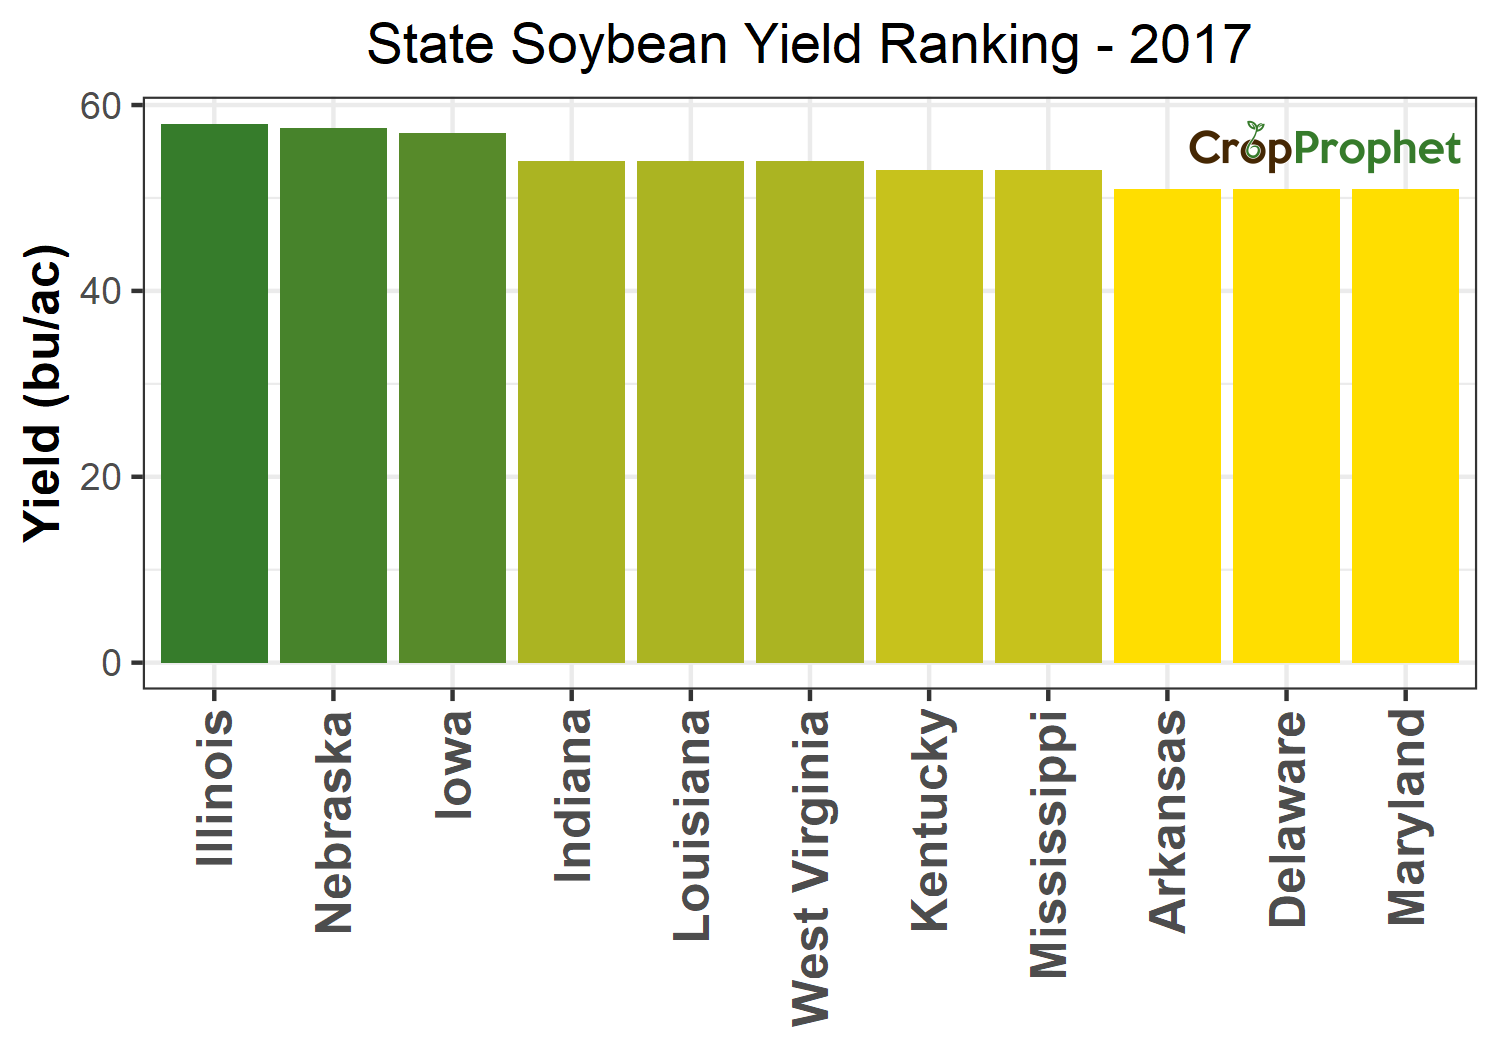 Soybean Production by State - 2017 Rankings